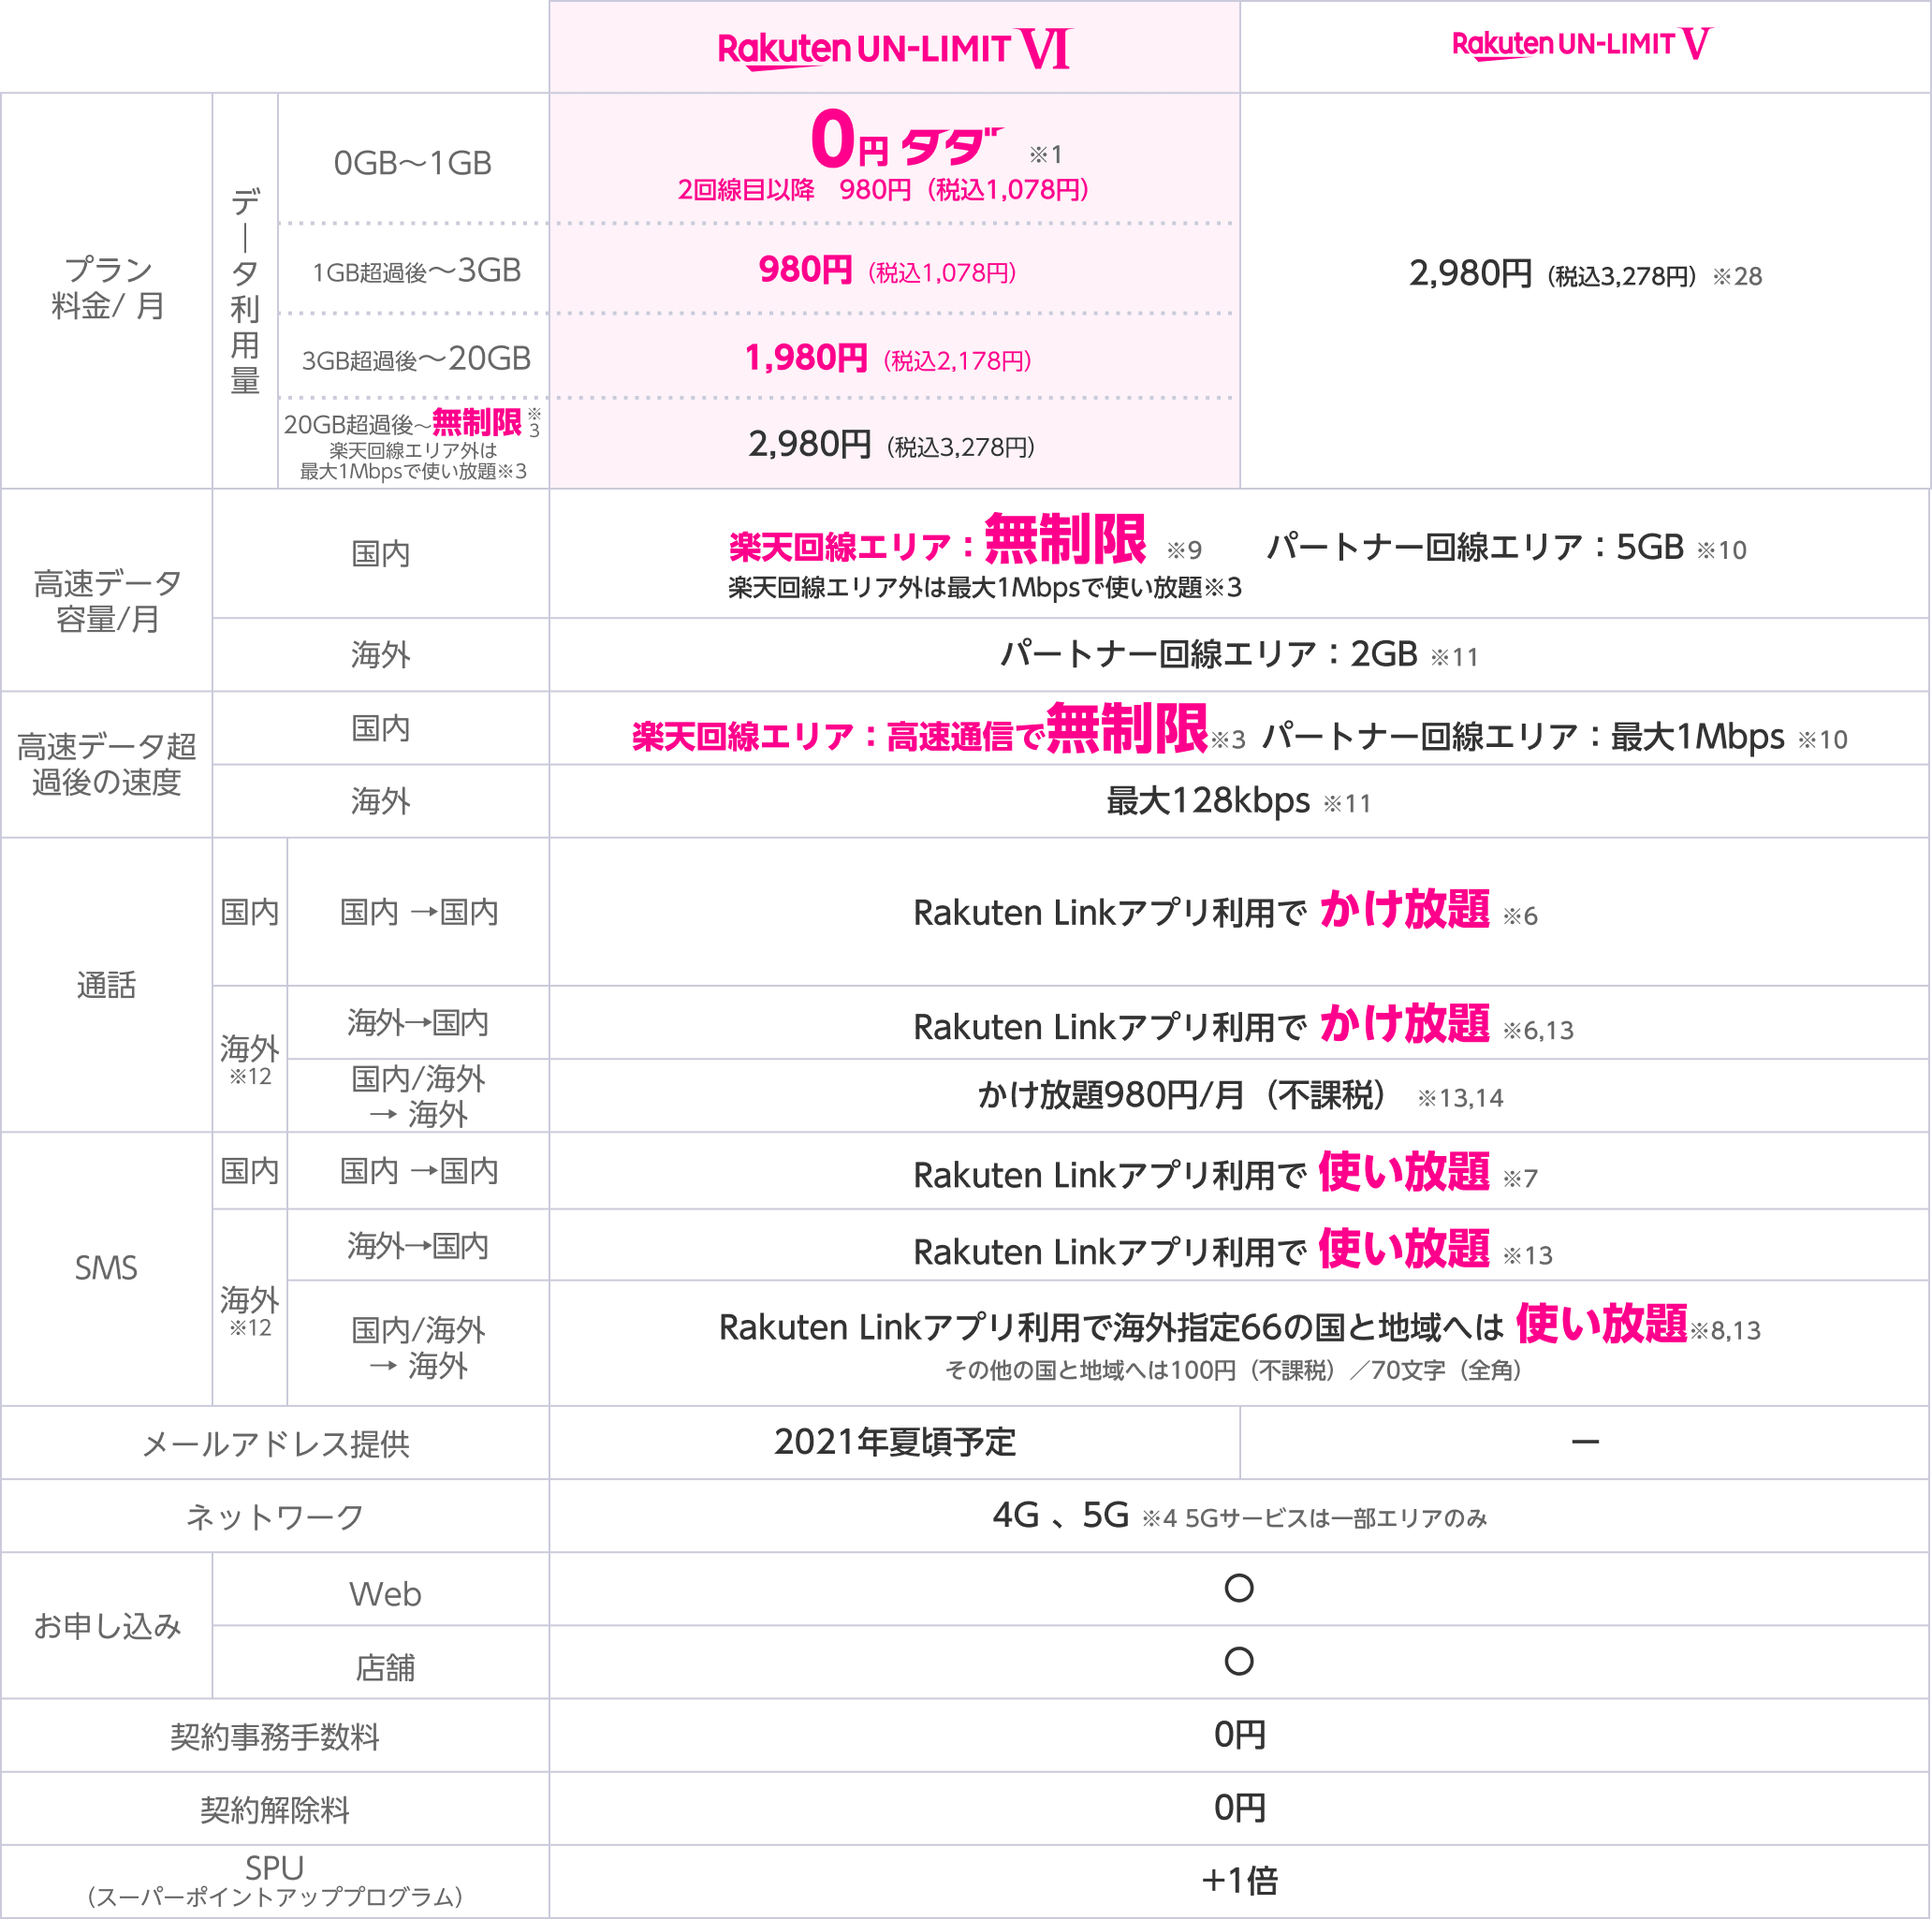 https://network.mobile.rakuten.co.jp/assets/img/fee/un-limit/img-compare-01-pc.png?210204